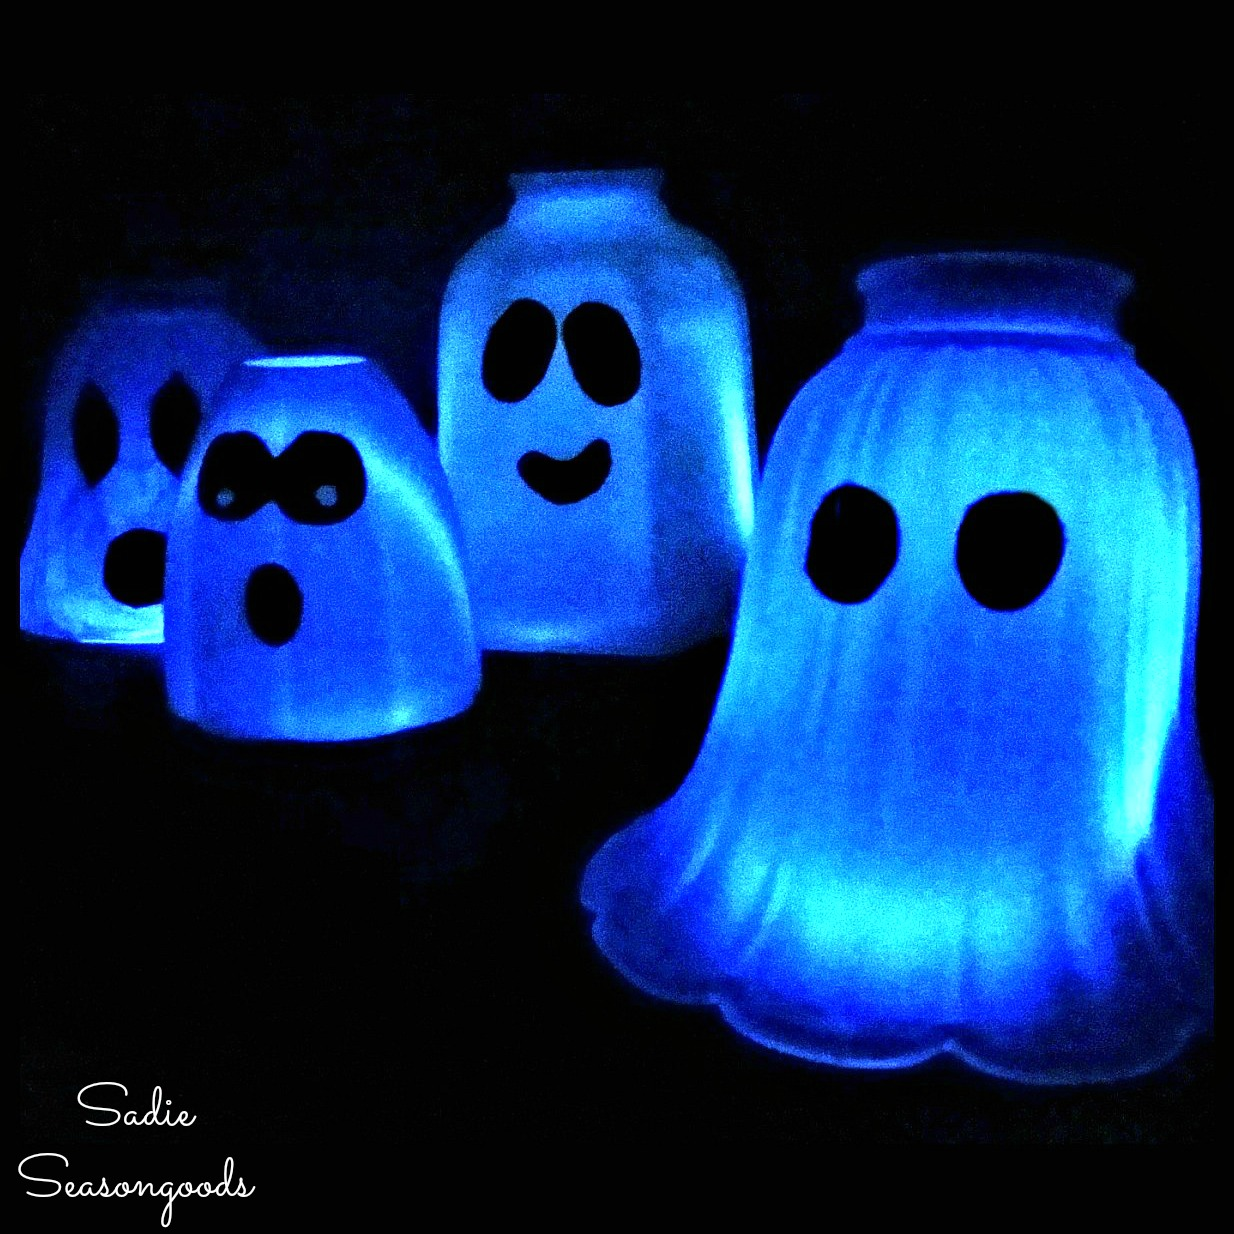 Ghost light for light up Halloween decorations by upcycling the glass light covers with white glowsticks by Sadie Seasongoods